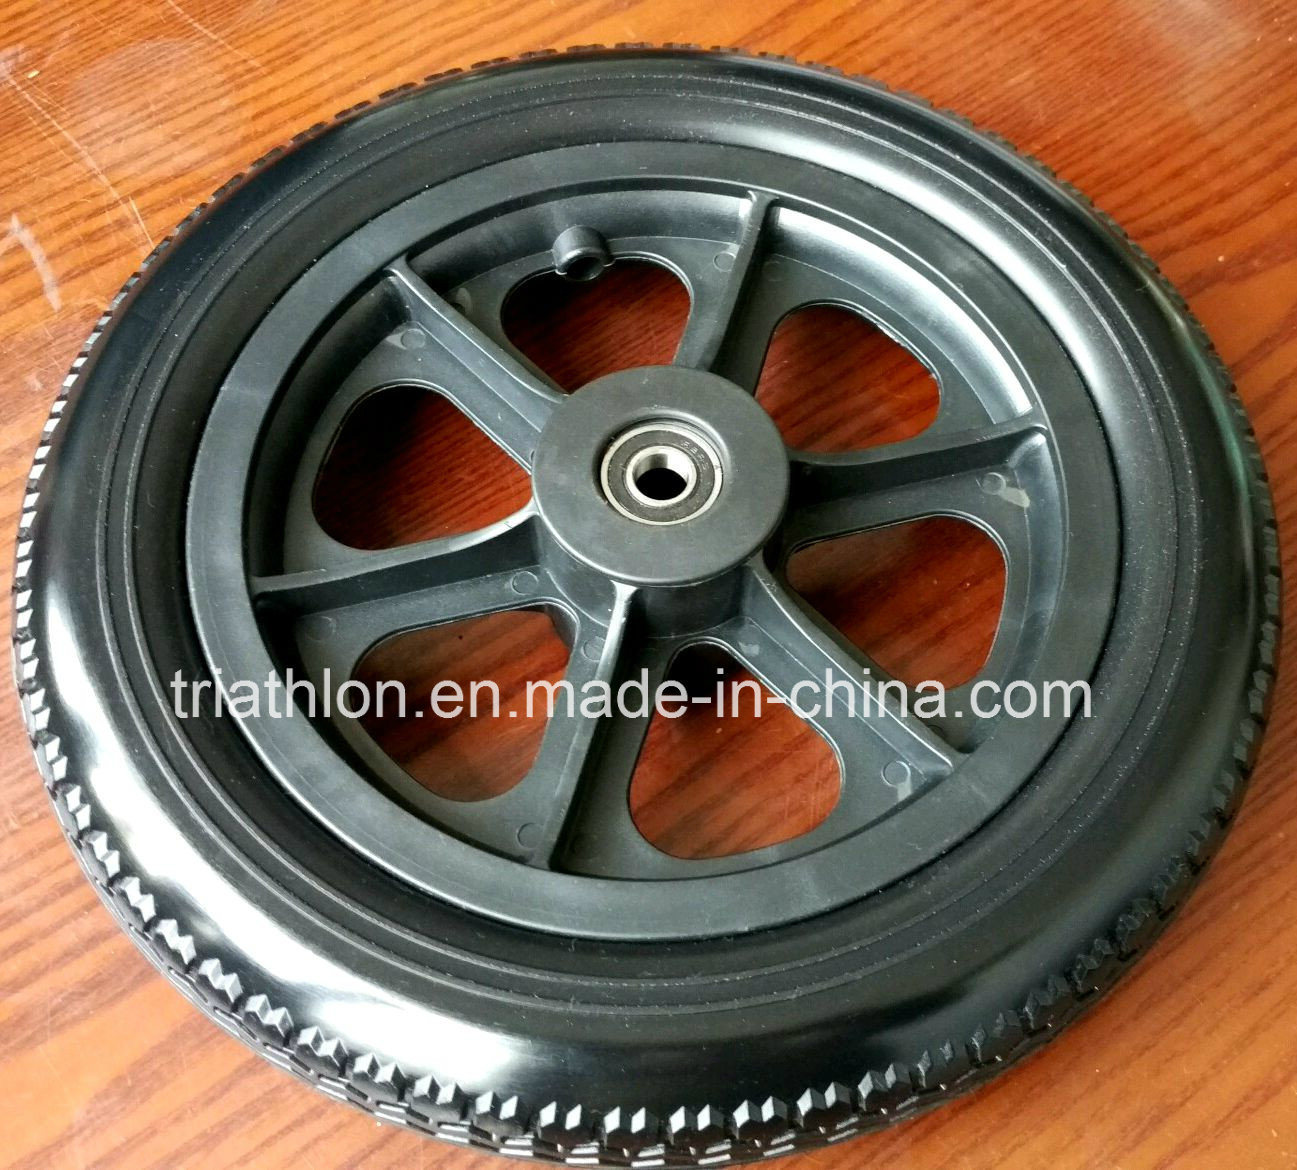 12X 1.75 12X2.125 12X2.5 12X3 Flat Free Trolley Wheel